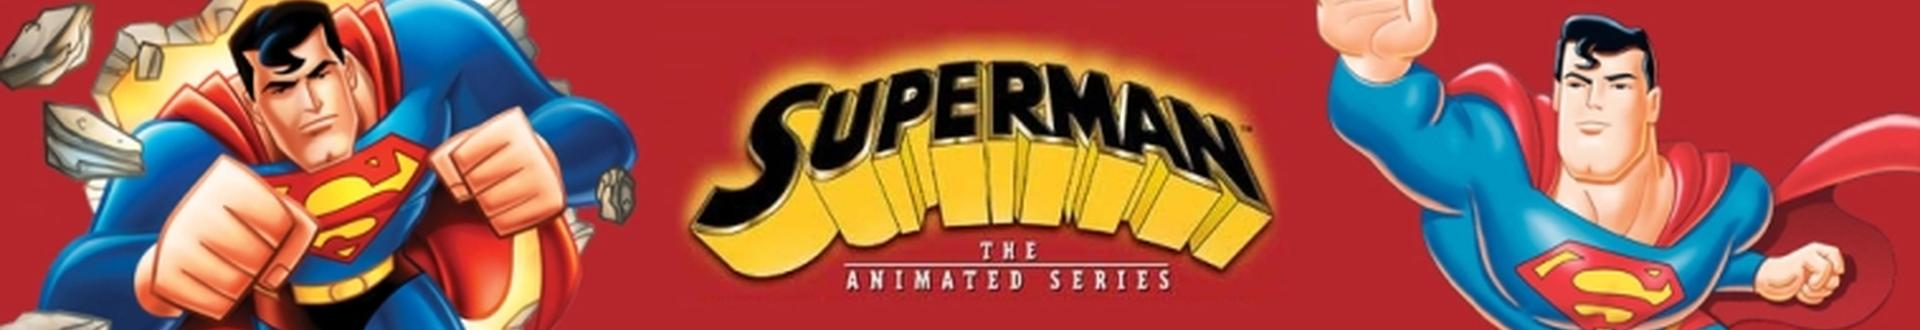 Image illustrative de Superman: The Animated Series